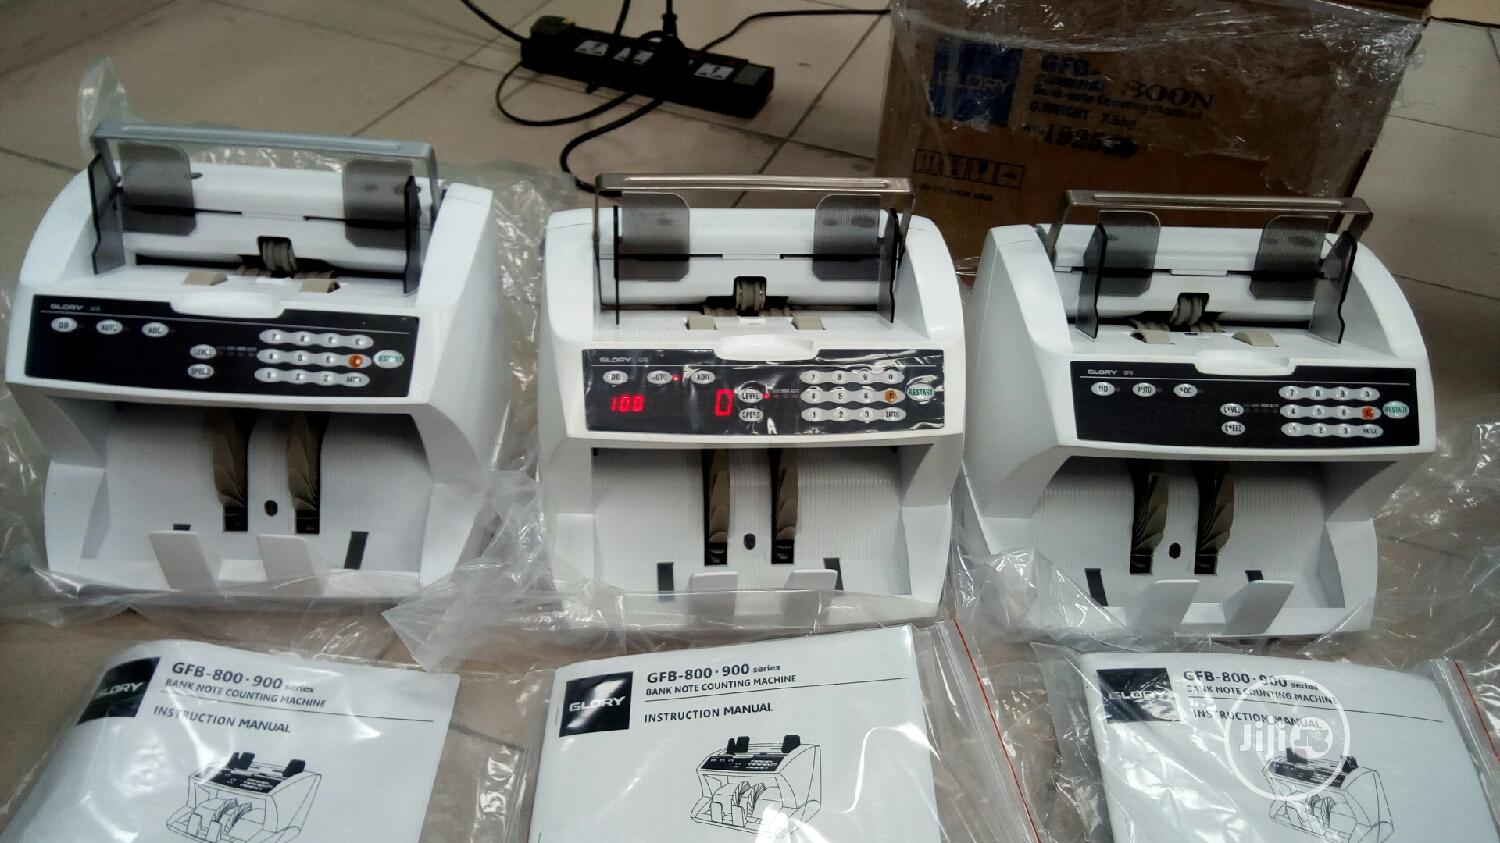 Brand New Imported Original Glory Note Counting Machine Model Gfb 800N